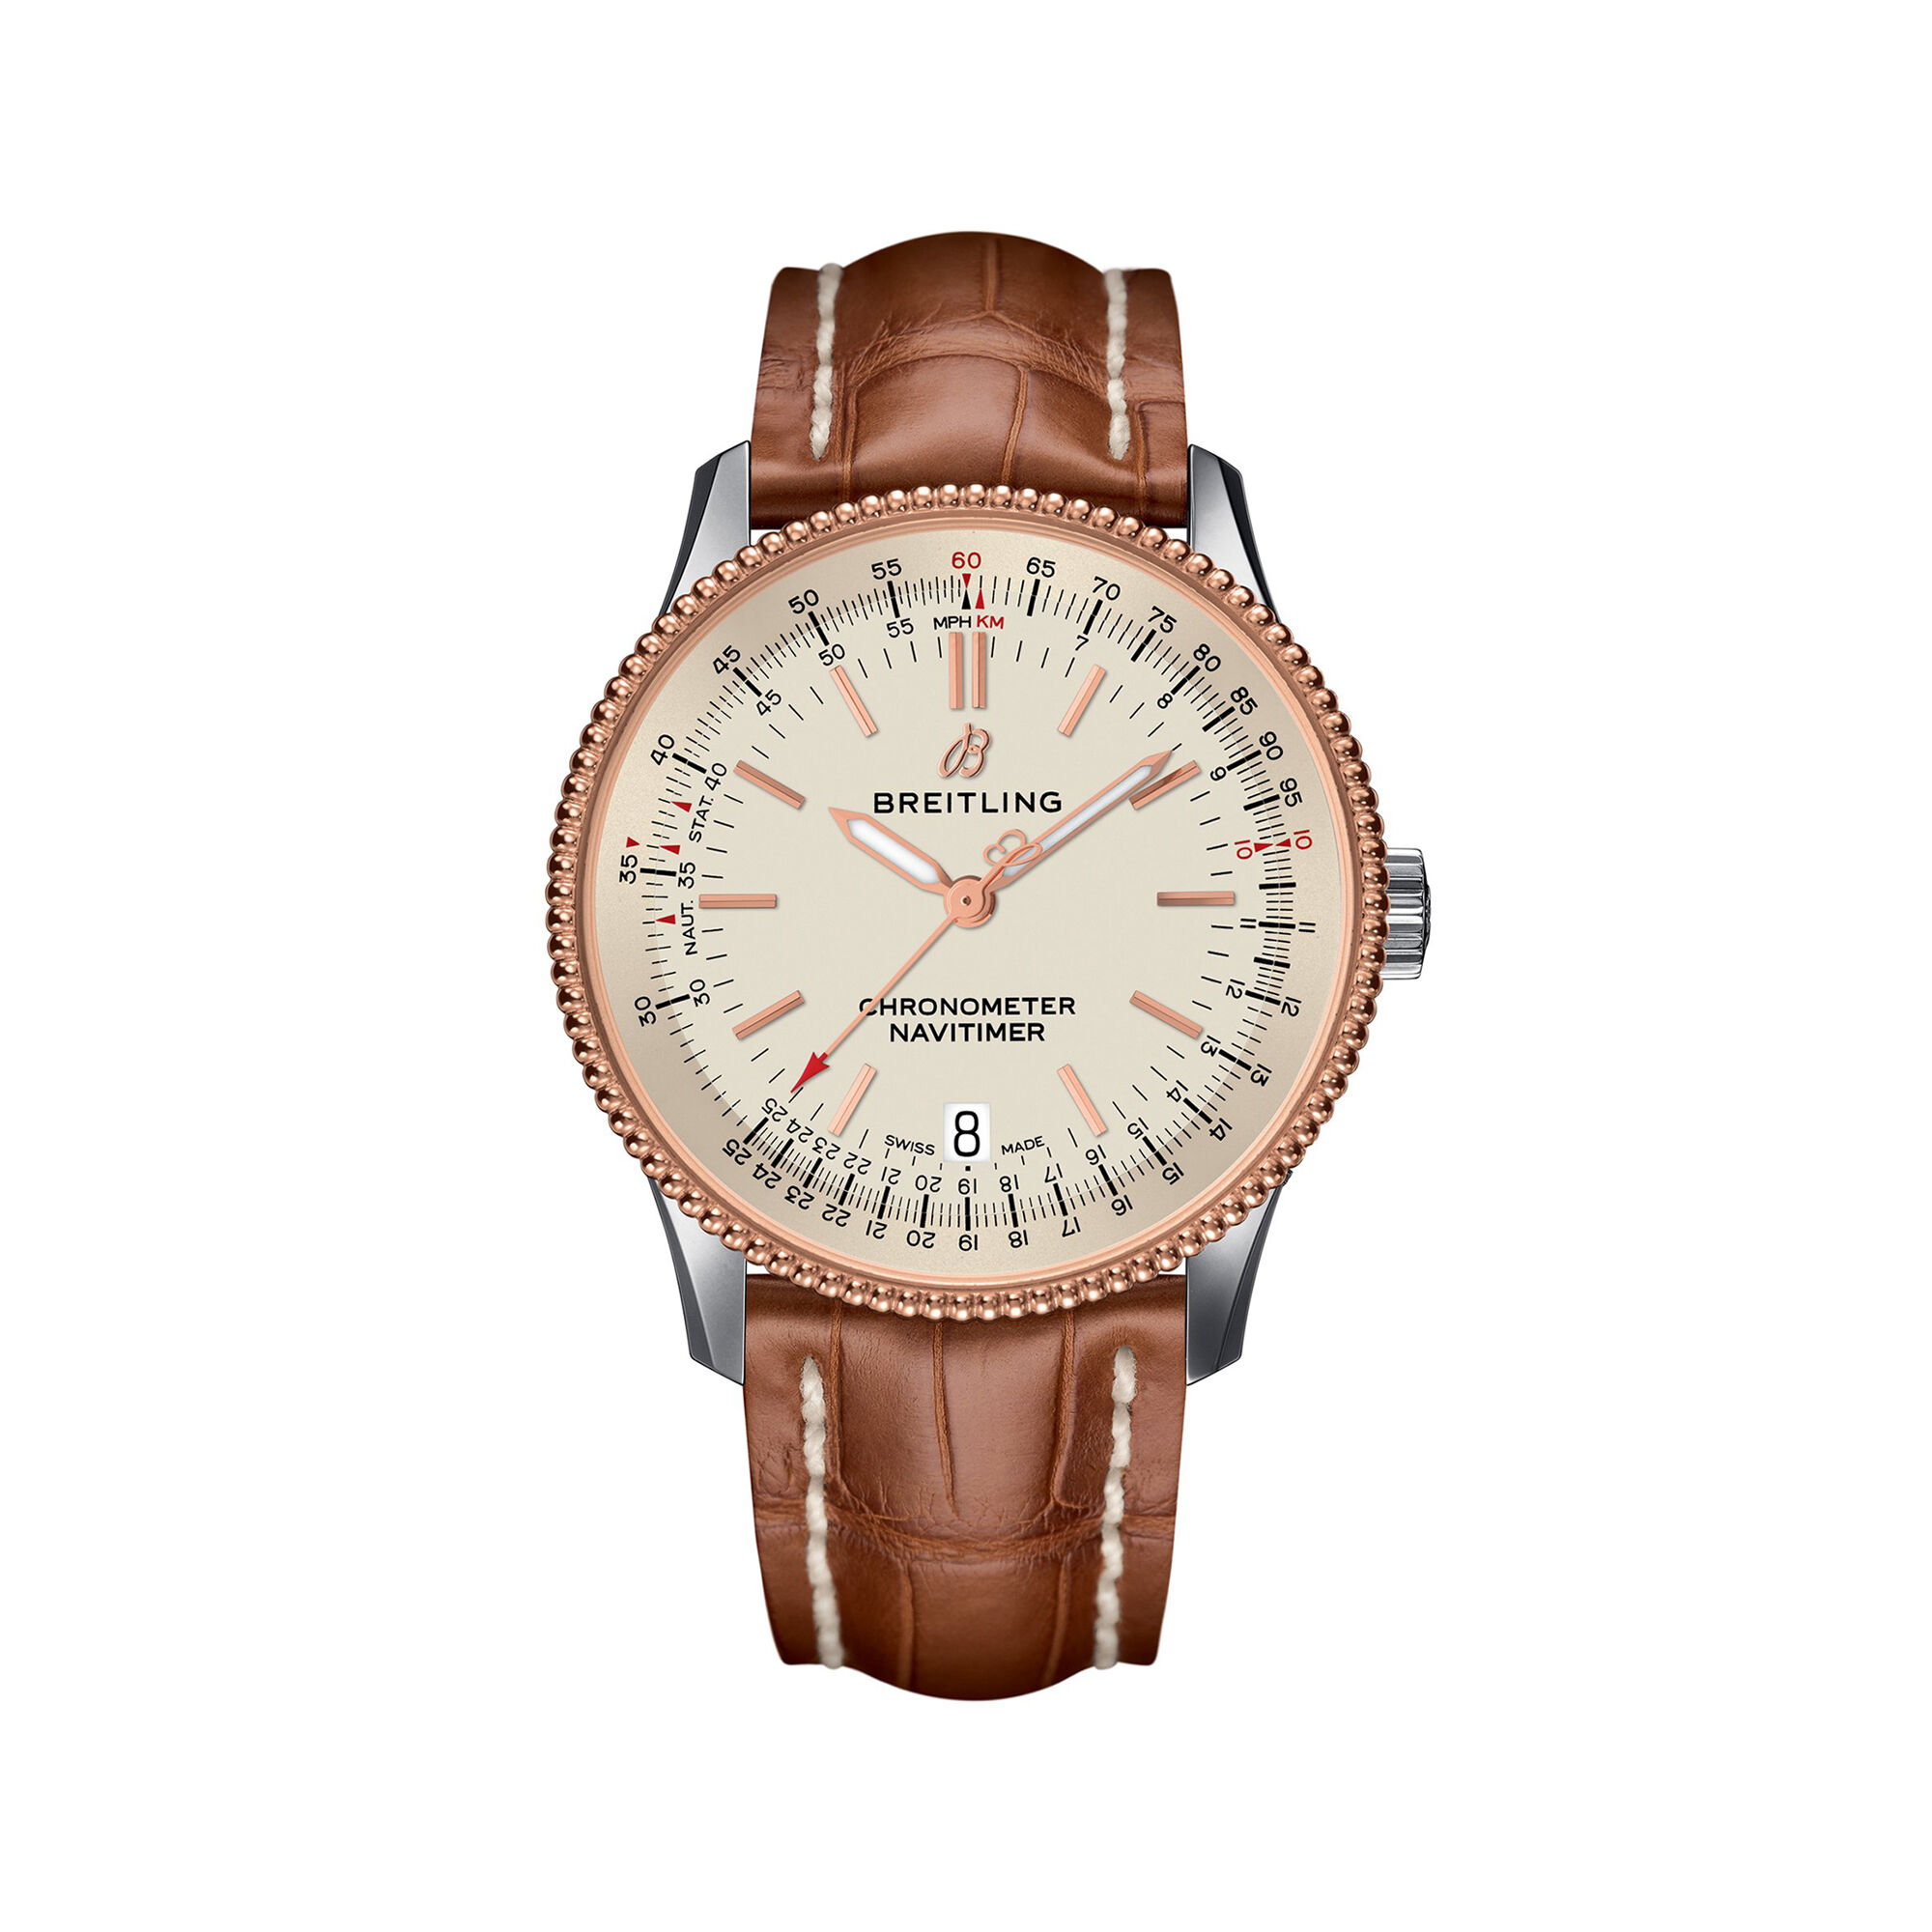 Leather Strap Rose Gold Watch Breitling Navitimer 1 Men S 38mm Stainless Steel And 18kt Rose Gold Watch Brown Leather Strap